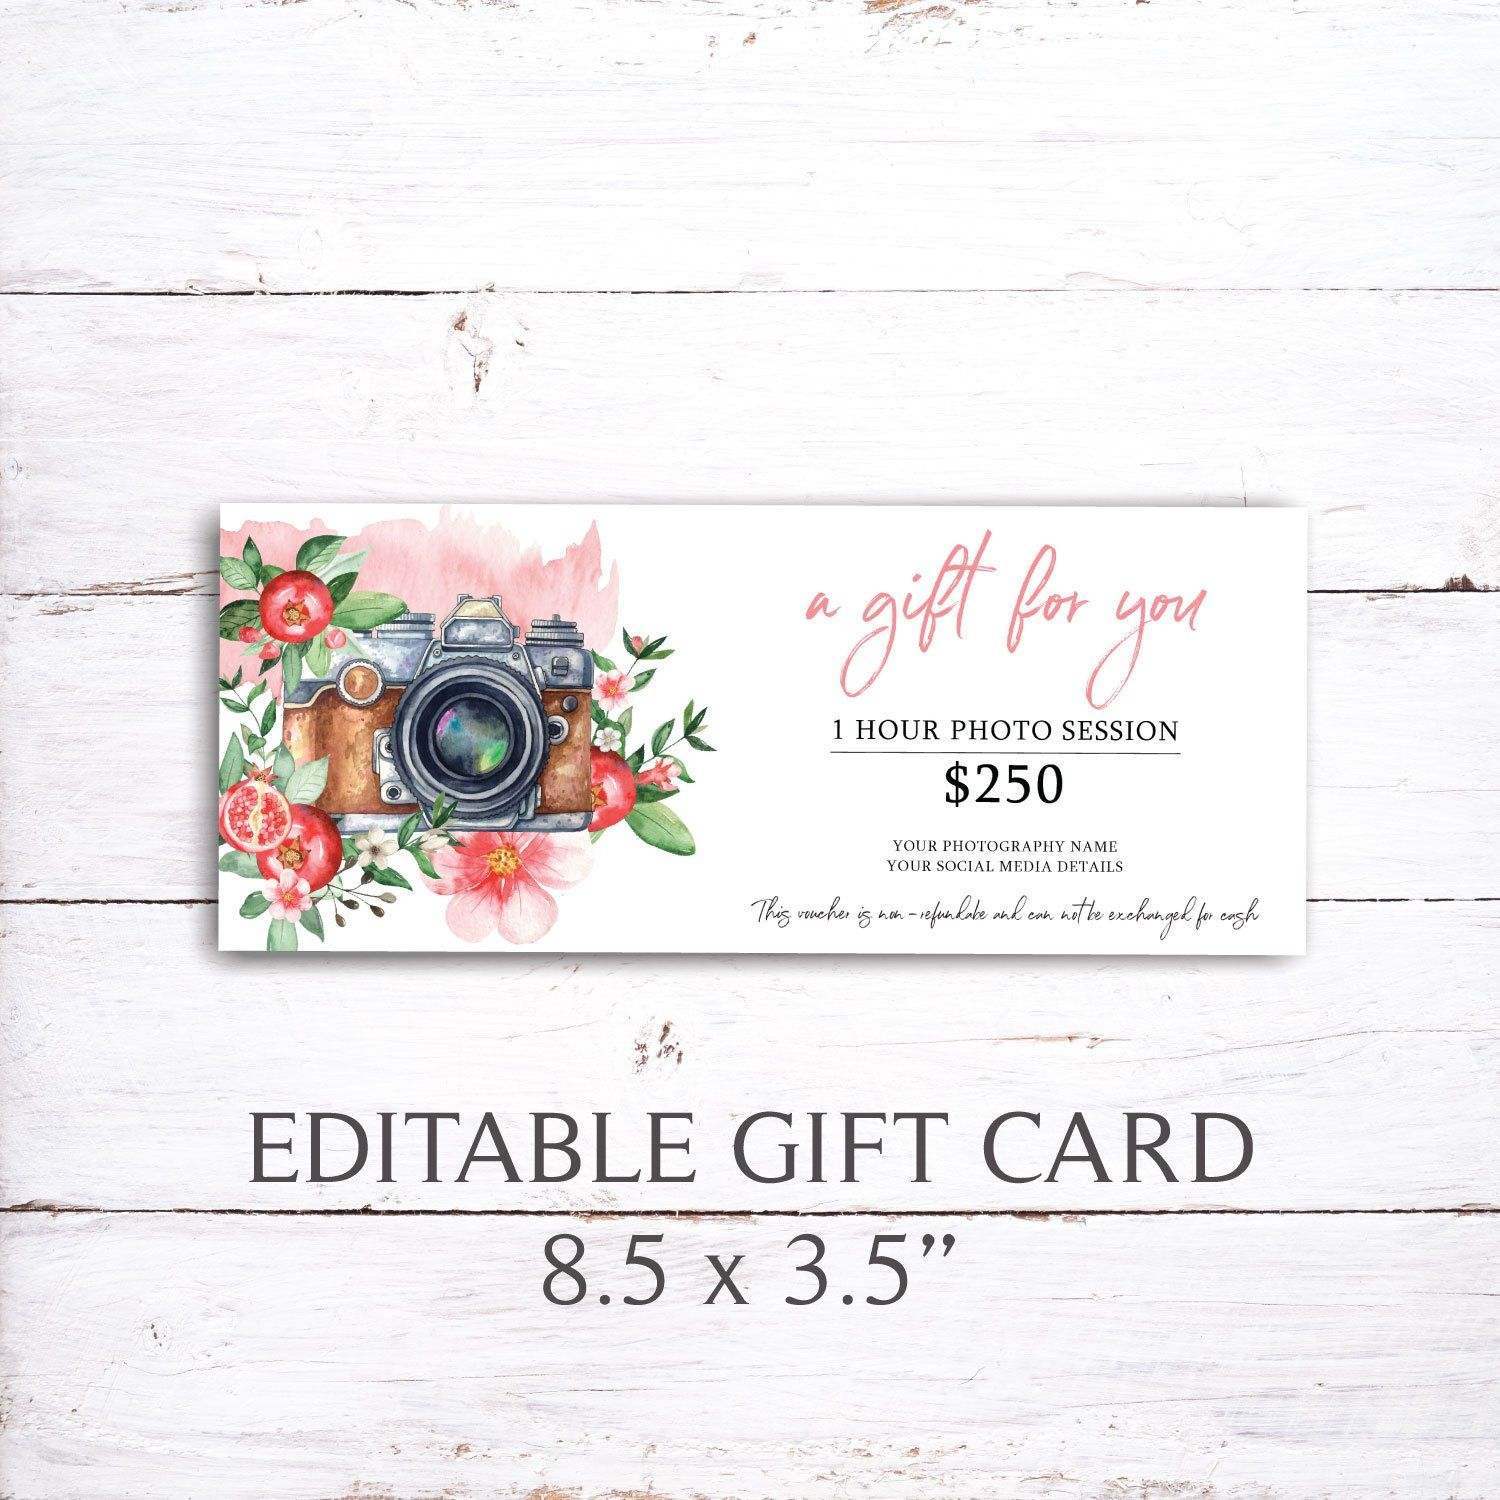 Printable Gift Certificate Gift Certificate Template Watercolor In 2021 Photography Gift Certificate Template Photography Gift Certificate Printable Gift Certificate Printable photography gift certificate template